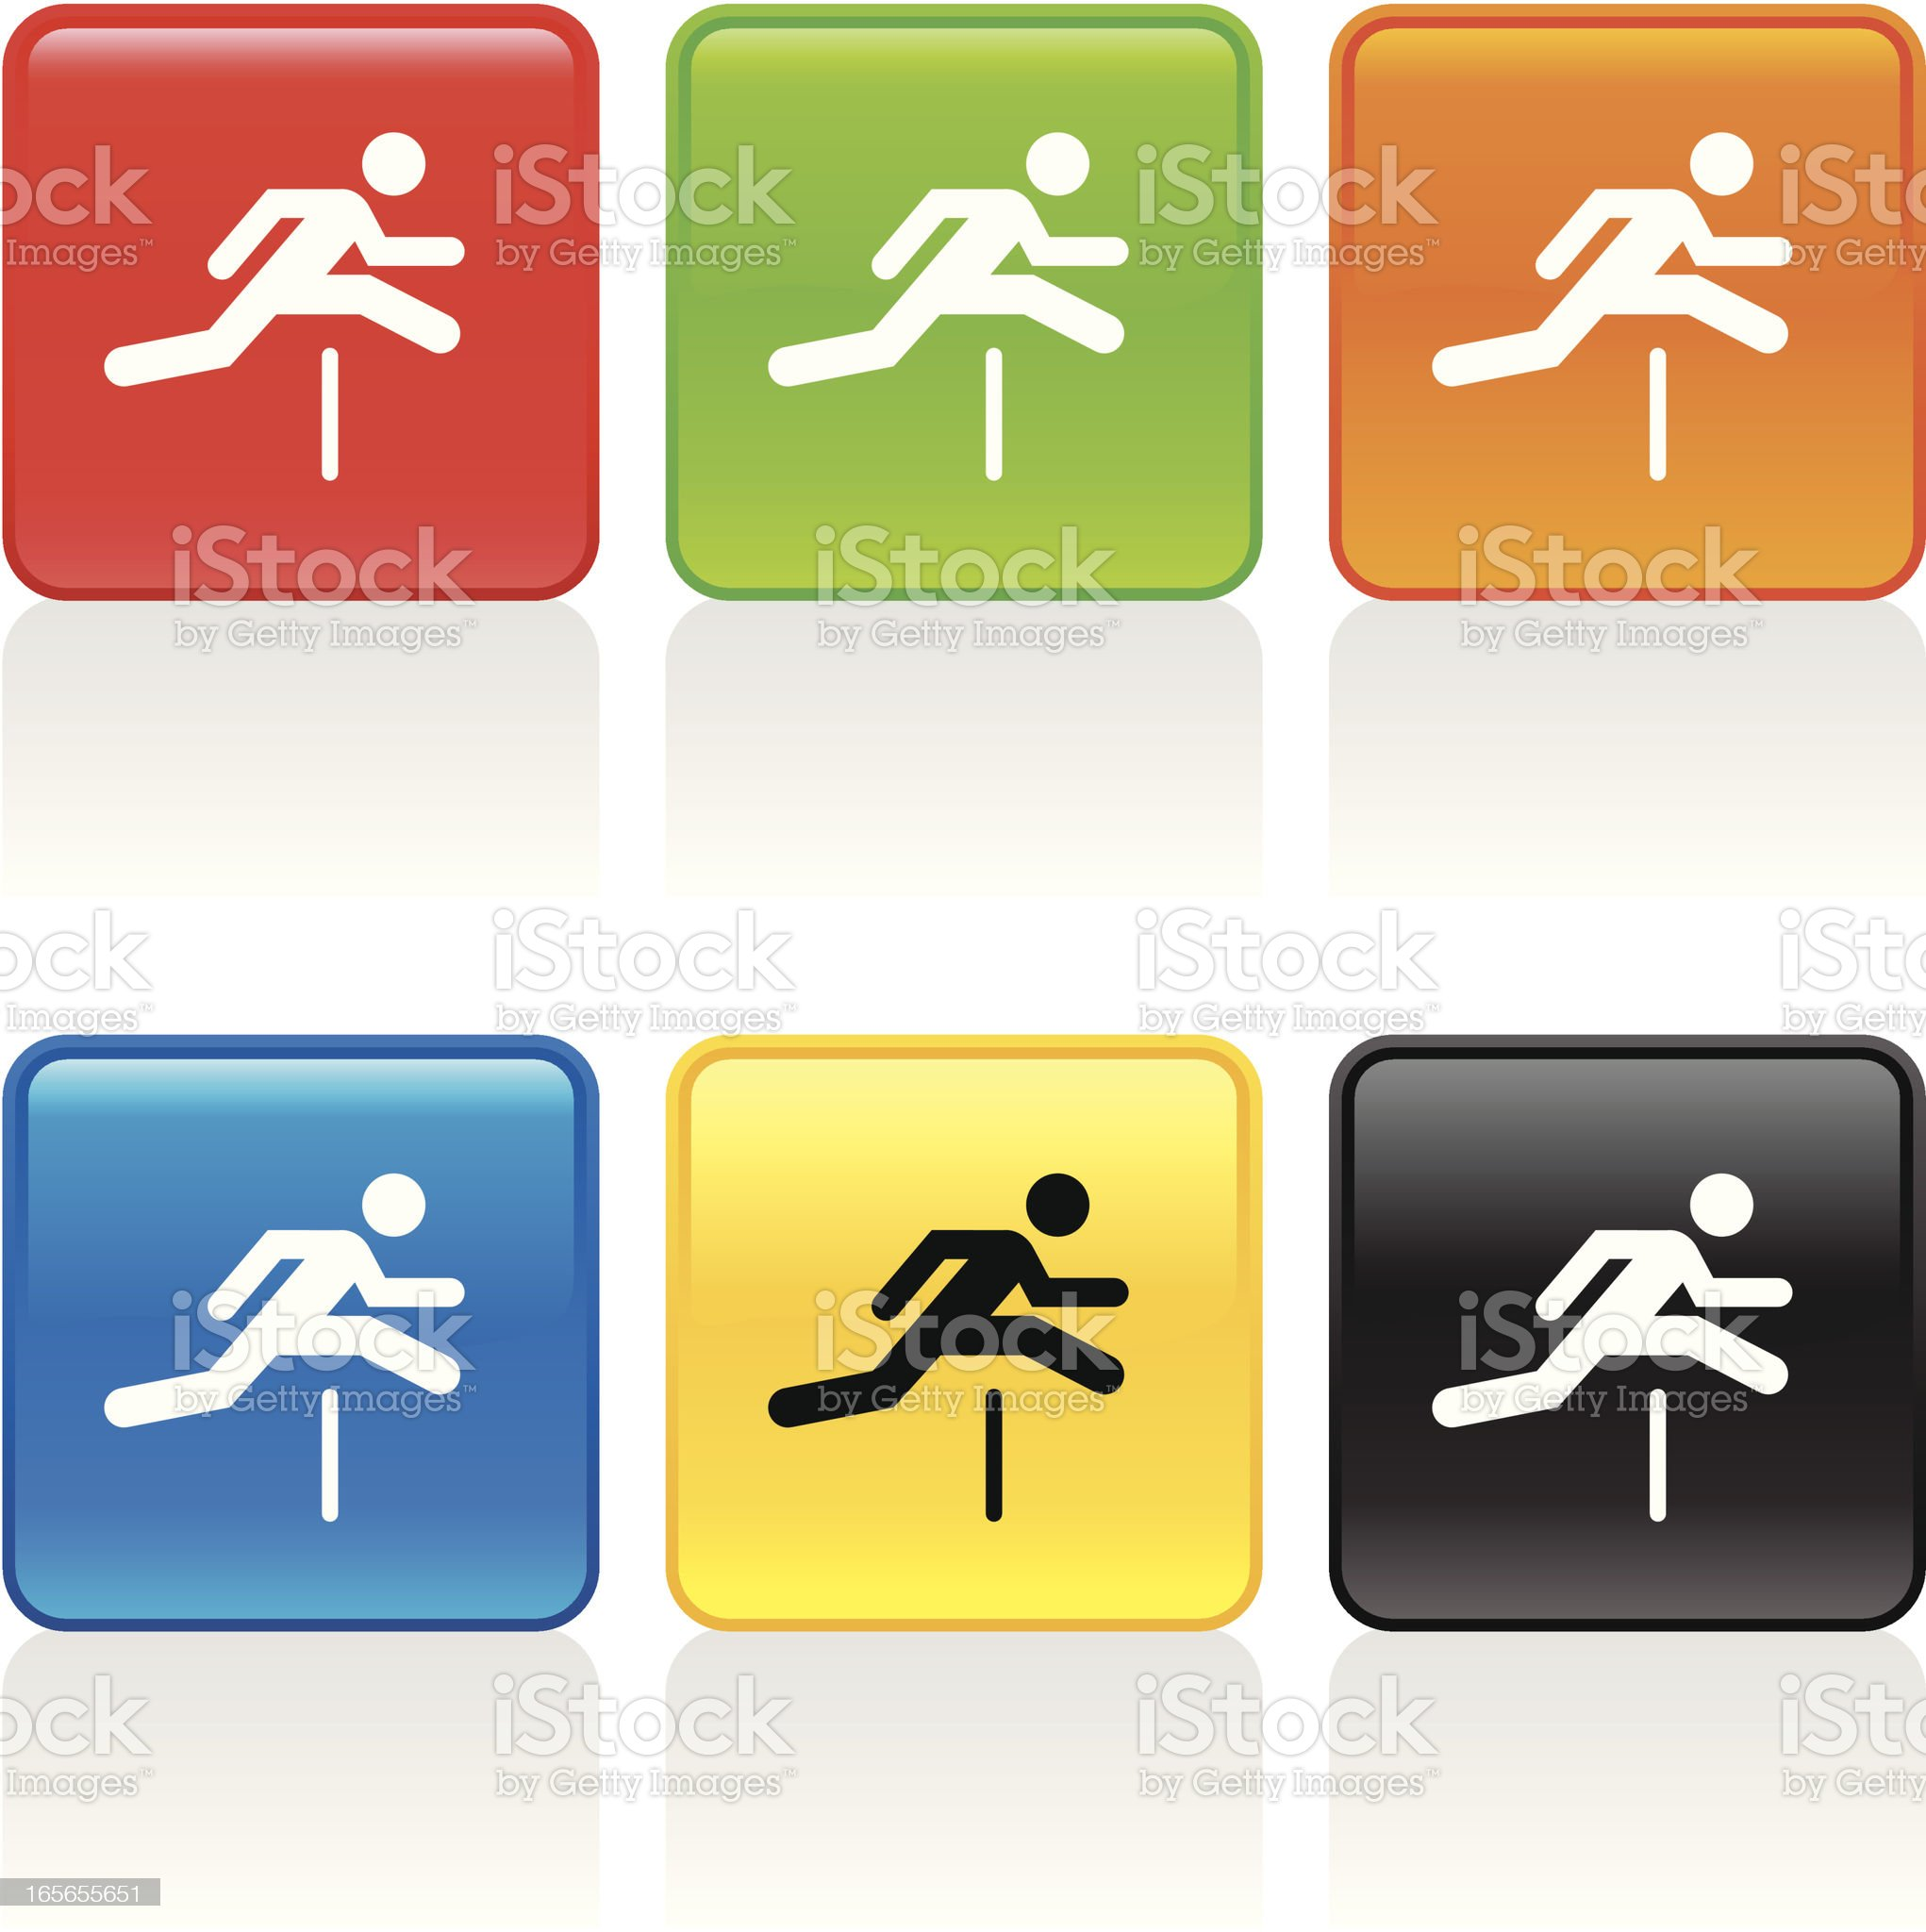 Hurdler Icon royalty-free stock vector art